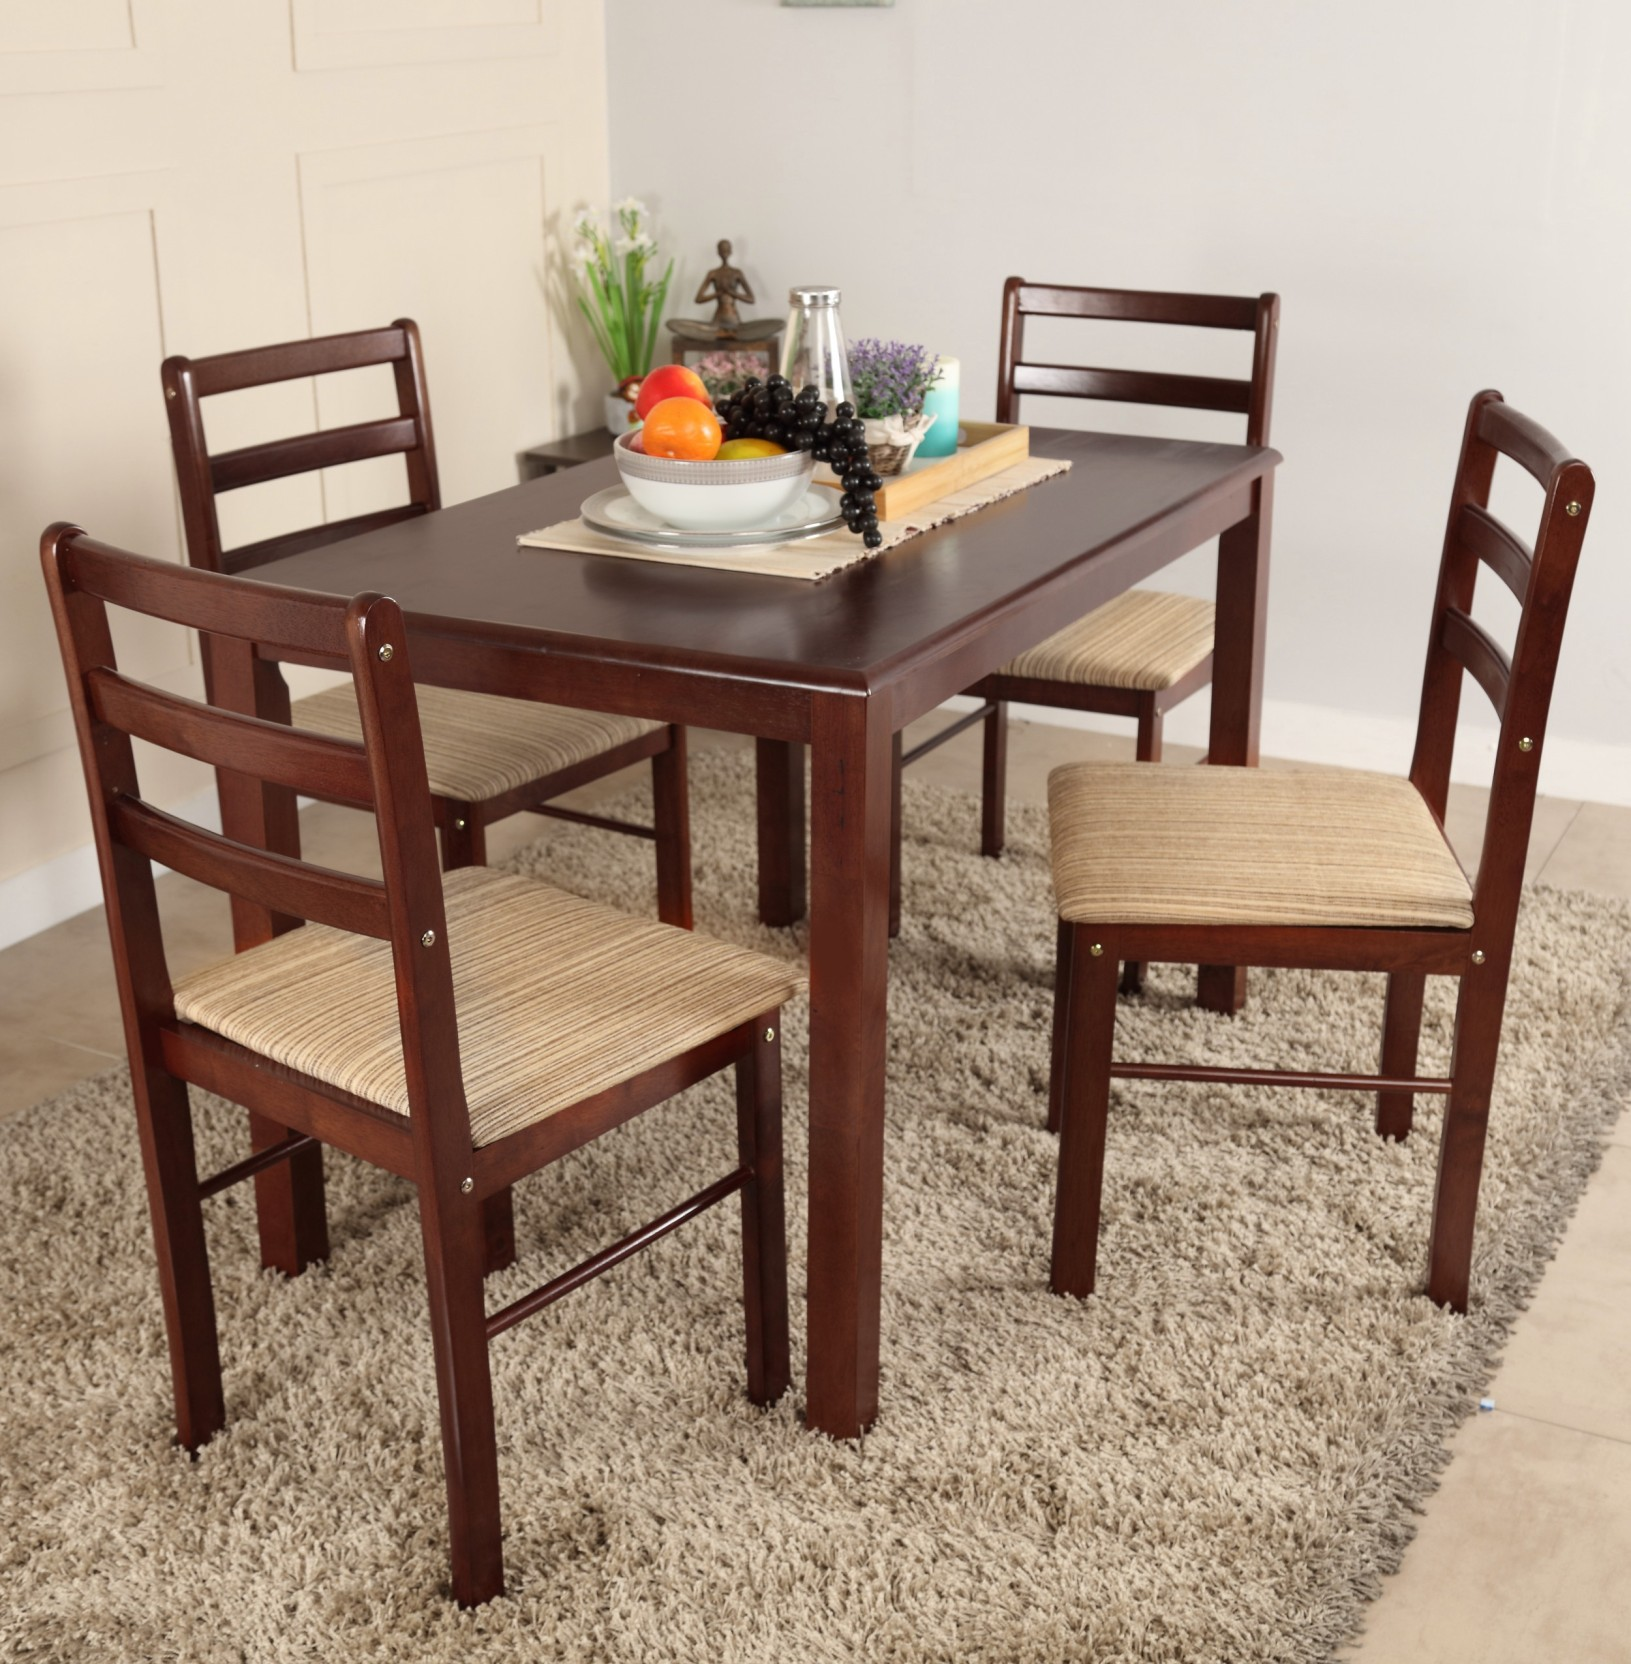 High quality dining room chairs best home design 2018 for High chair dining set